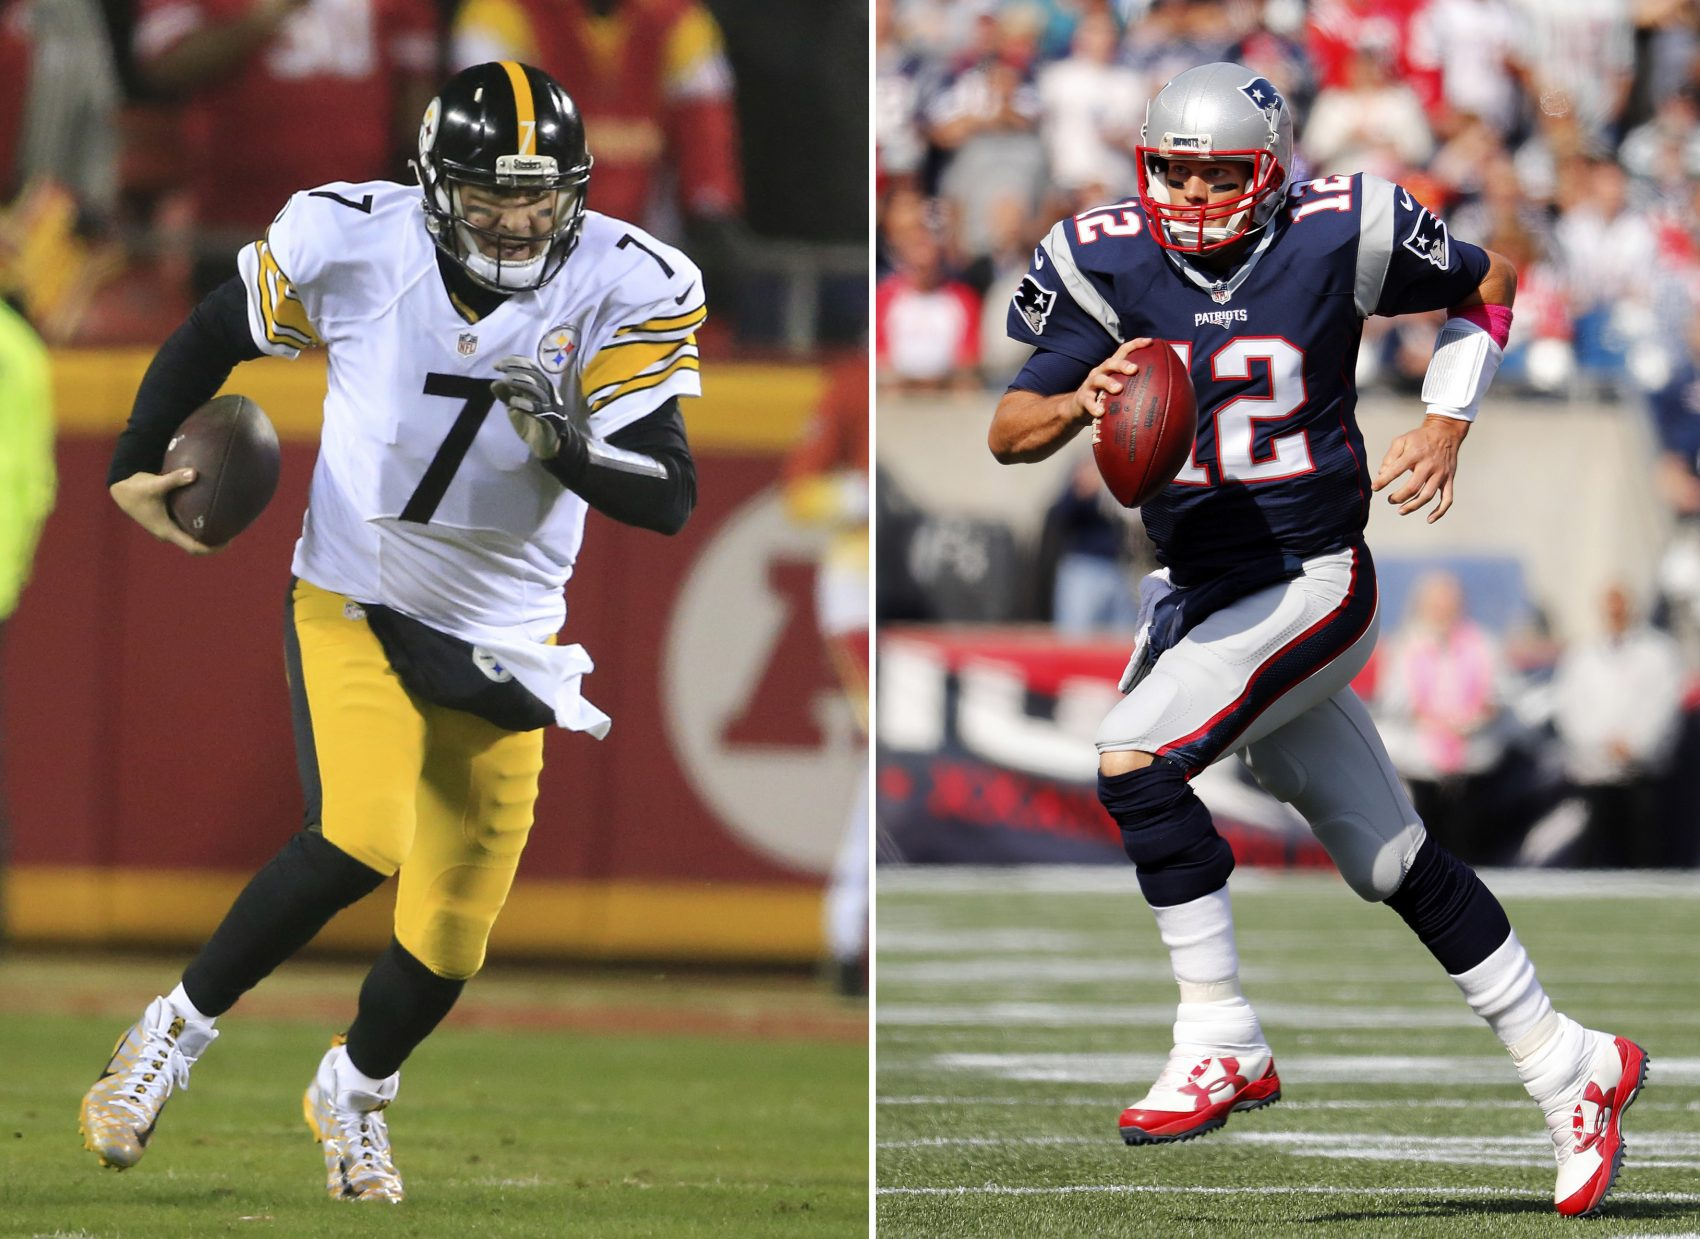 At left, in a Jan. 15, 2017 file photo, Pittsburgh Steelers quarterback Ben Roethlisberger plays against the Kansas City Chiefs. At right, in an Oct. 16, 2016 file photo, New England Patriots quarterback Tom Brady runs against the Cincinnati Bengals (Winslow Townson/AP File)